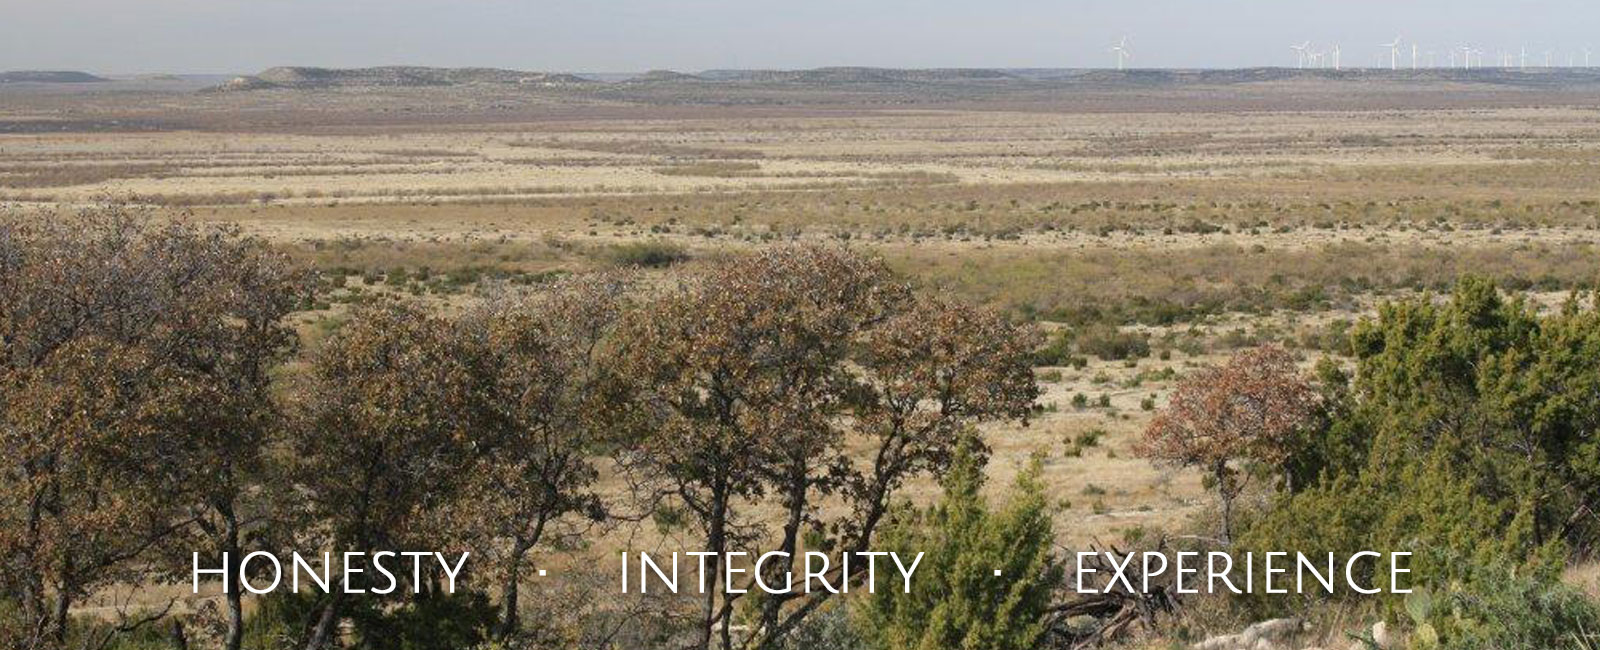 Texas Ranches For Sale - Behrens Ranch Sales :: Behrens